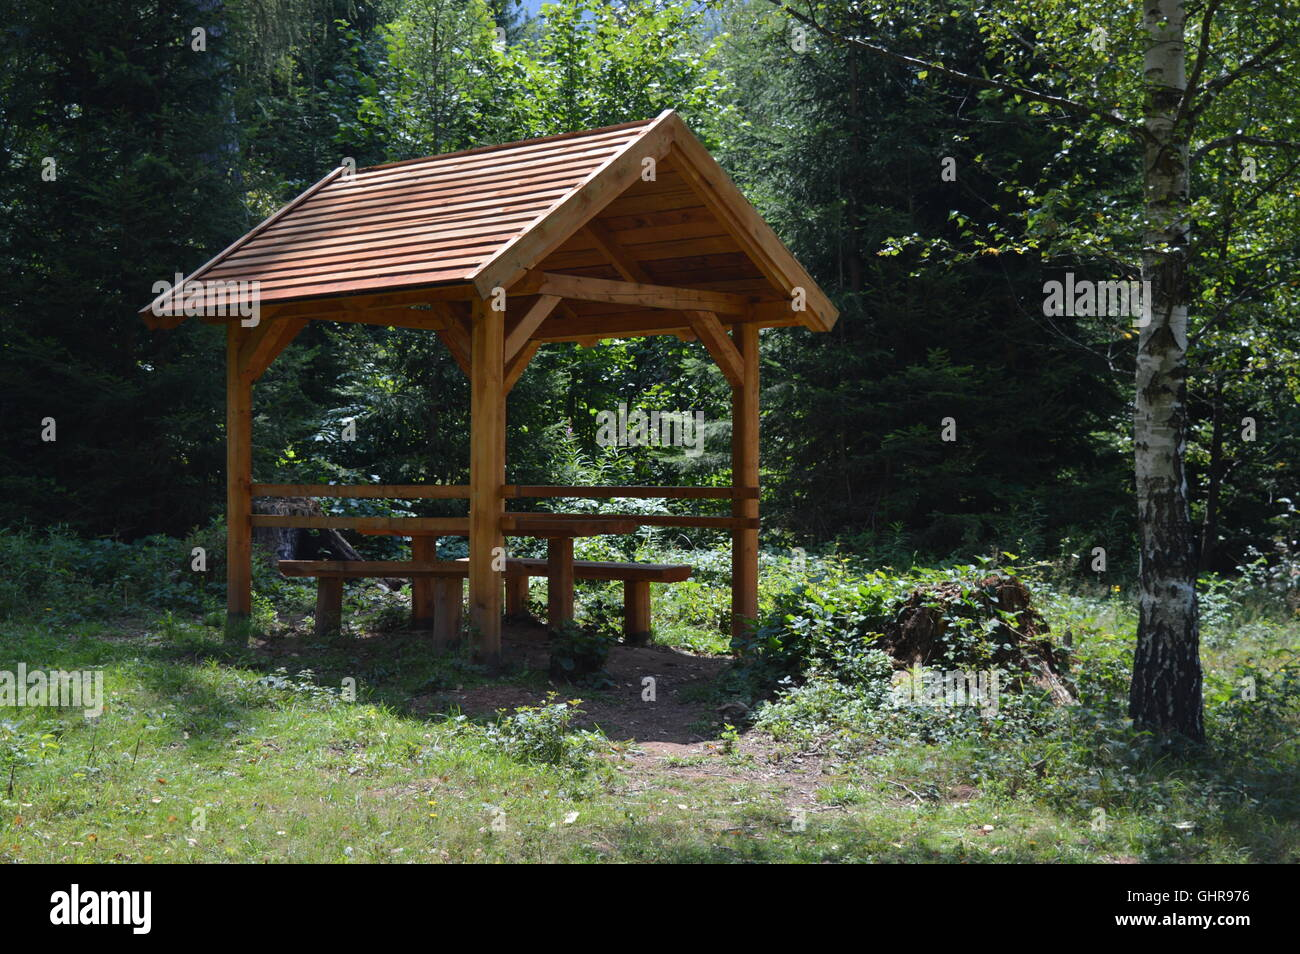 Forest resting place - Stock Image